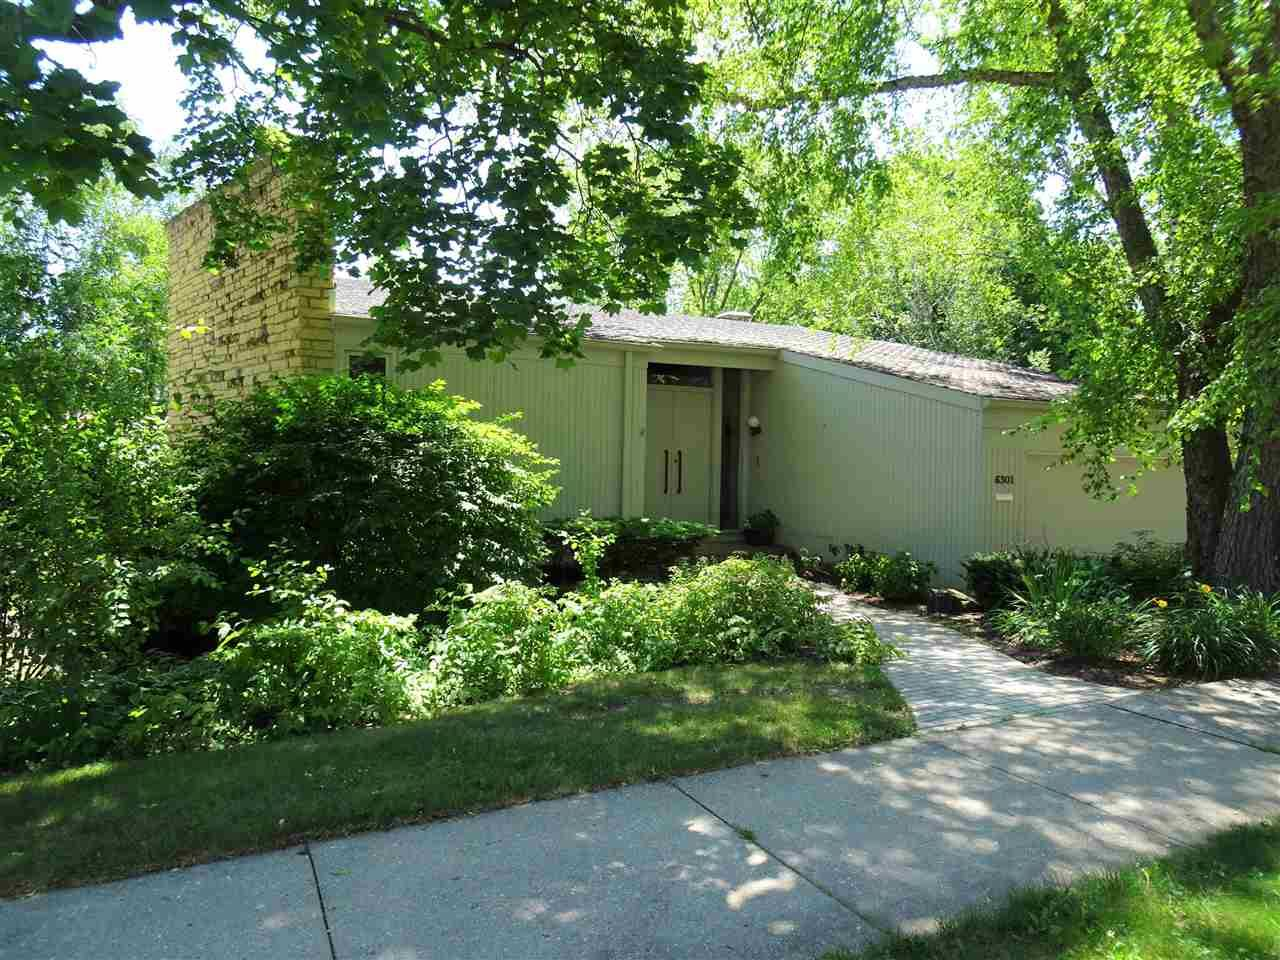 6301 Keelson Dr, Madison, WI 53705 - #: 1911888